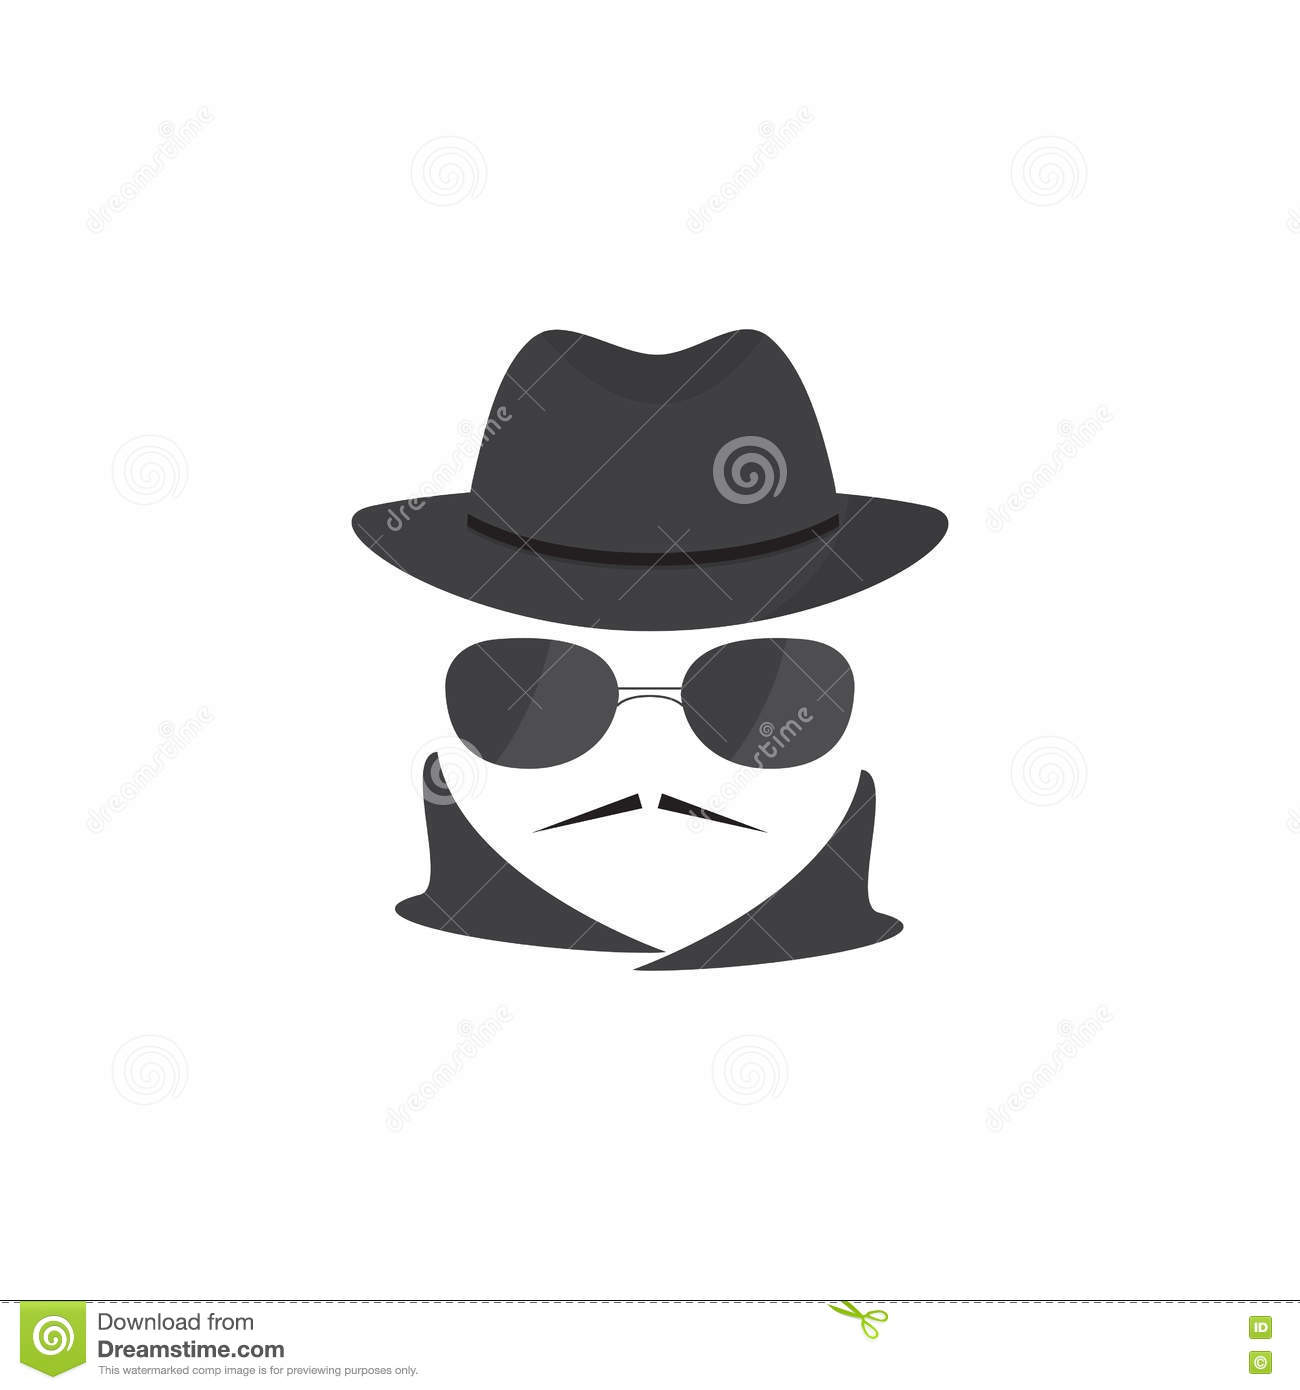 Mobster Man Royalty-Free Stock Photography